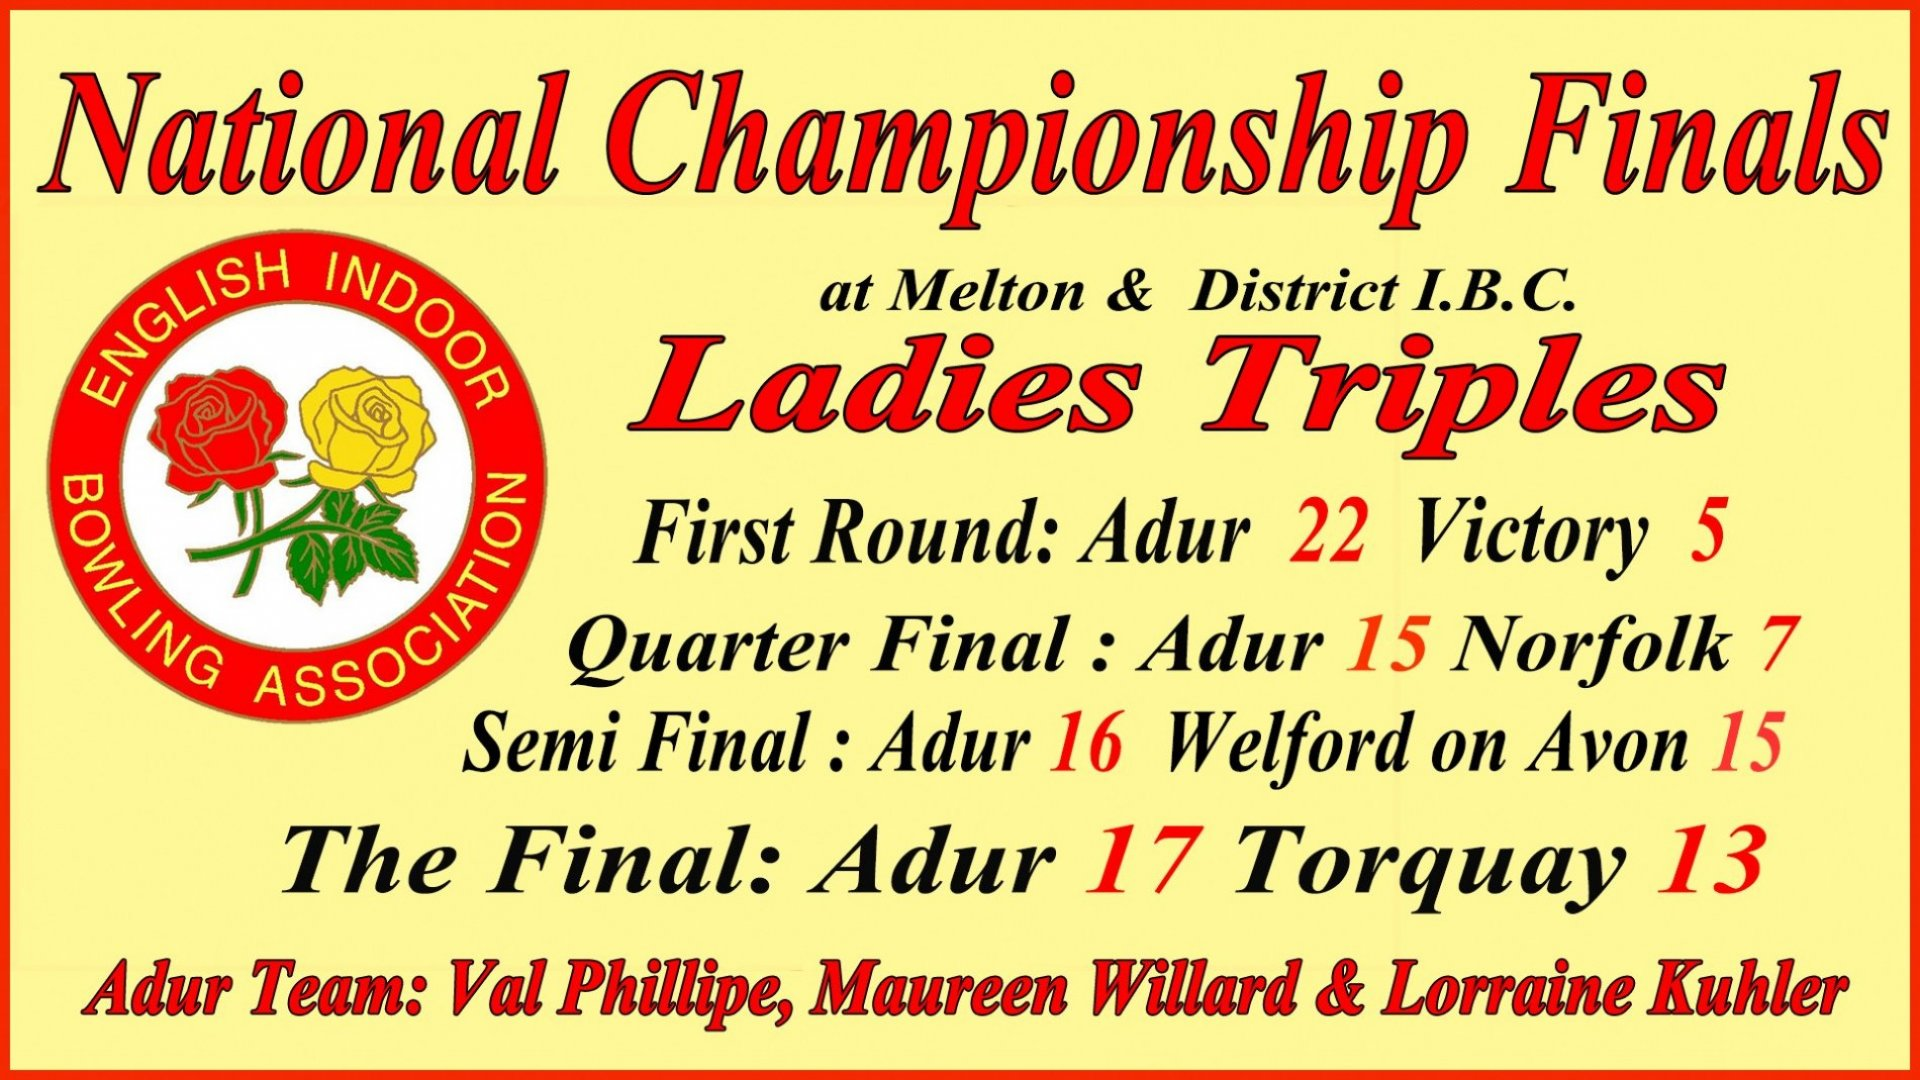 National Championship Finals- Ladies Triples - All stages RESULTS to CHAMPIONS @ Melton & DistricT IBC (1.4.18)